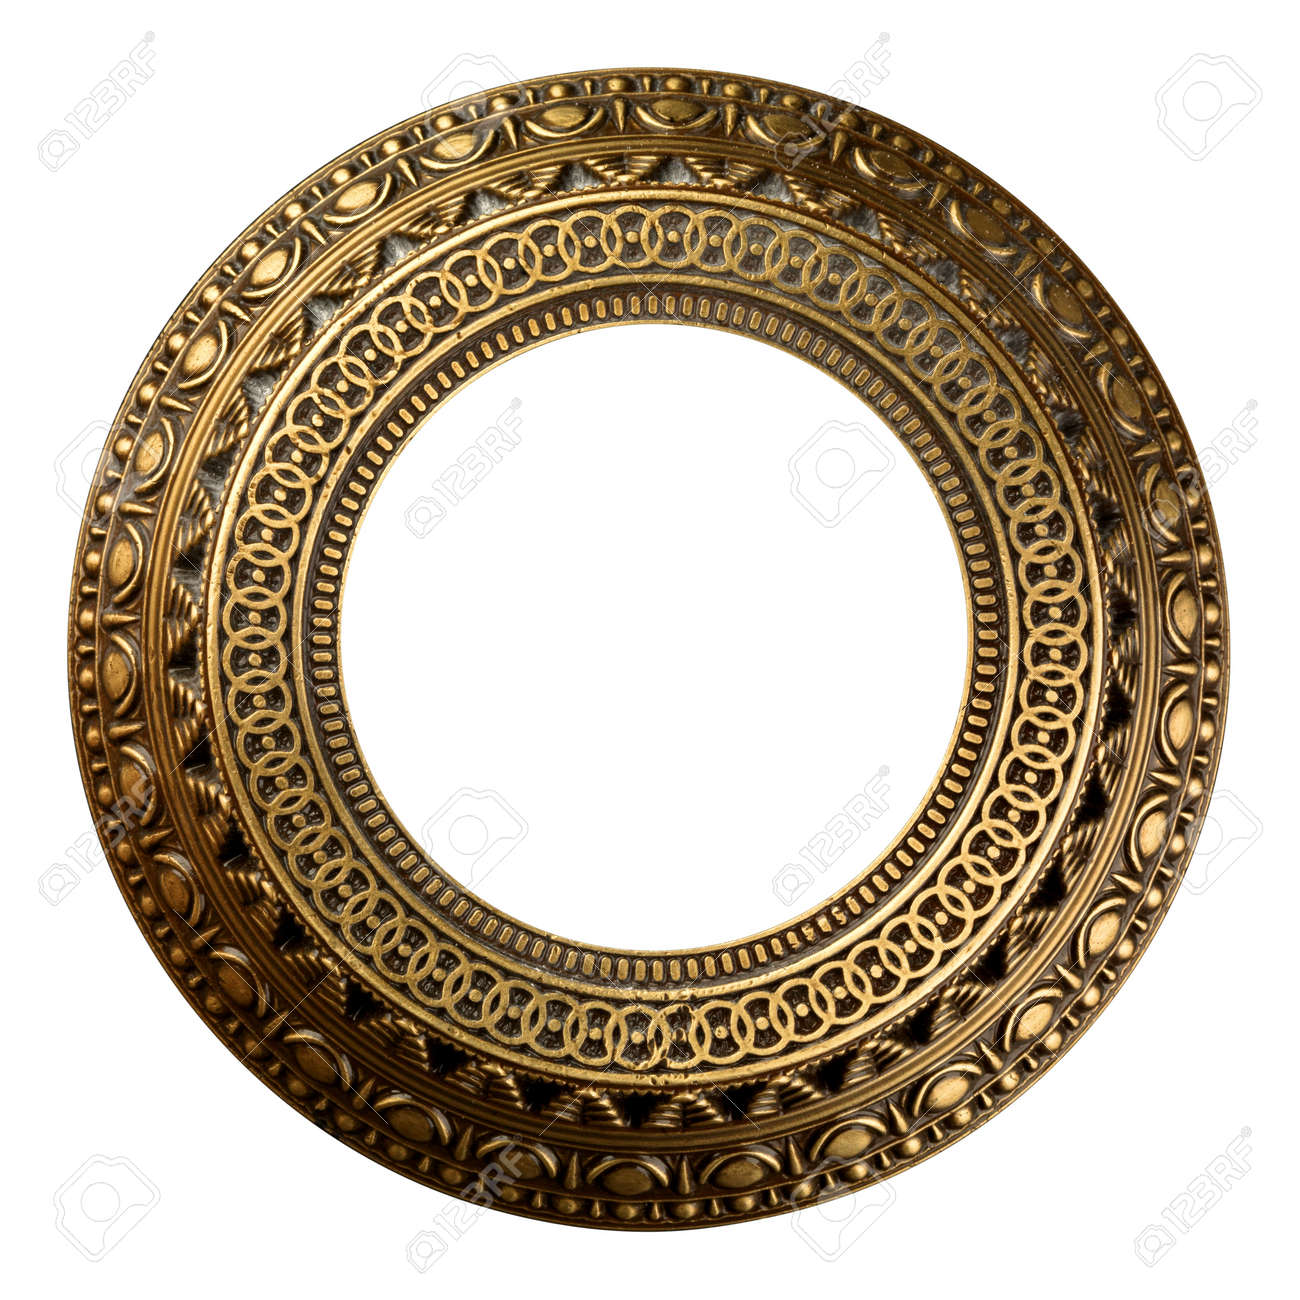 stock photo vintage gold ornate frame on white